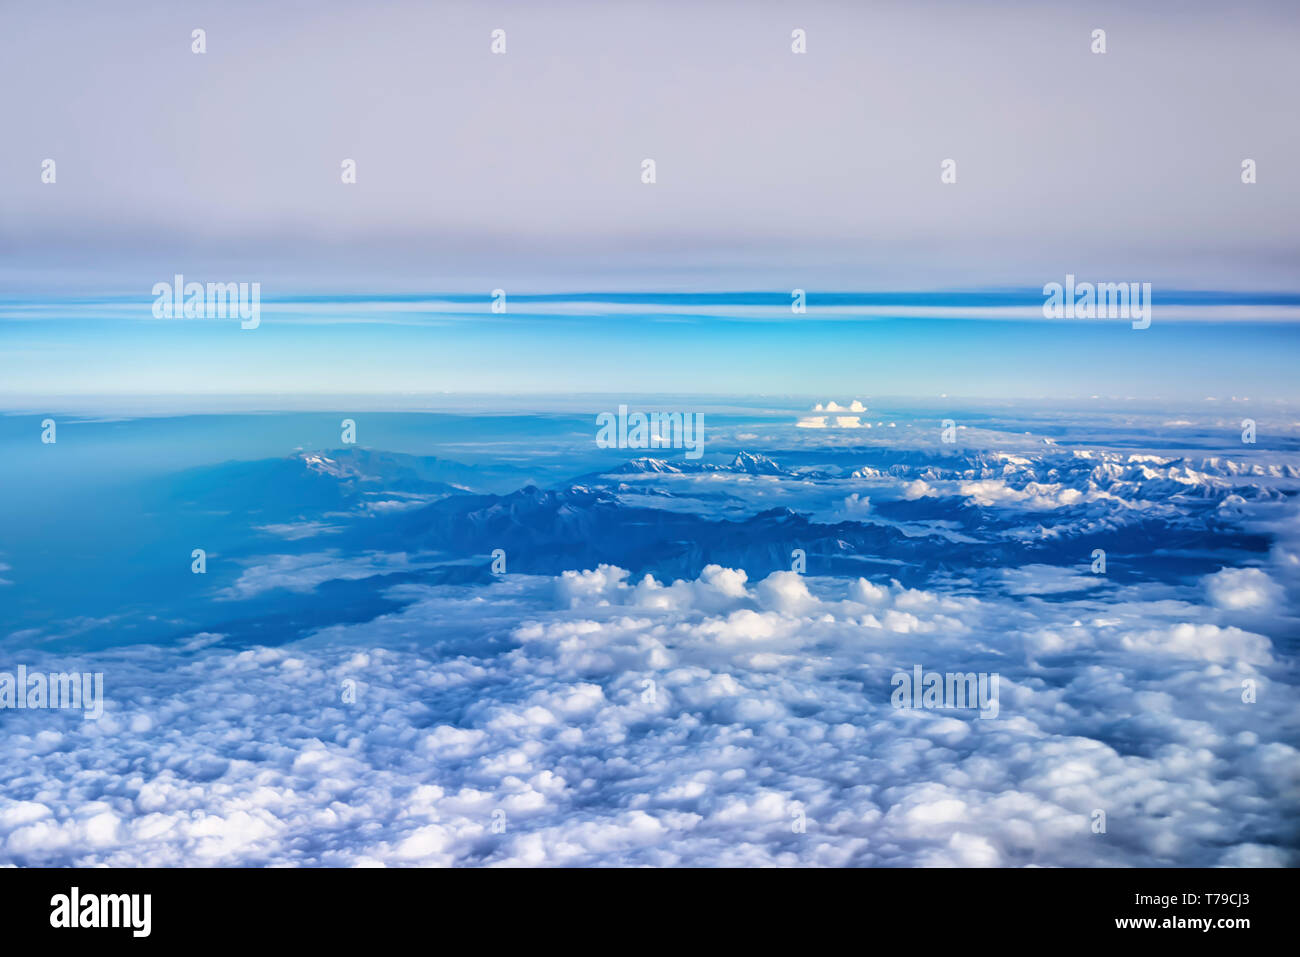 Aerial view of monsoon clouds over a mountain range in India. The snow covered peaks of Shivalik/Dhauladhar range can be seen on top right. - Stock Image